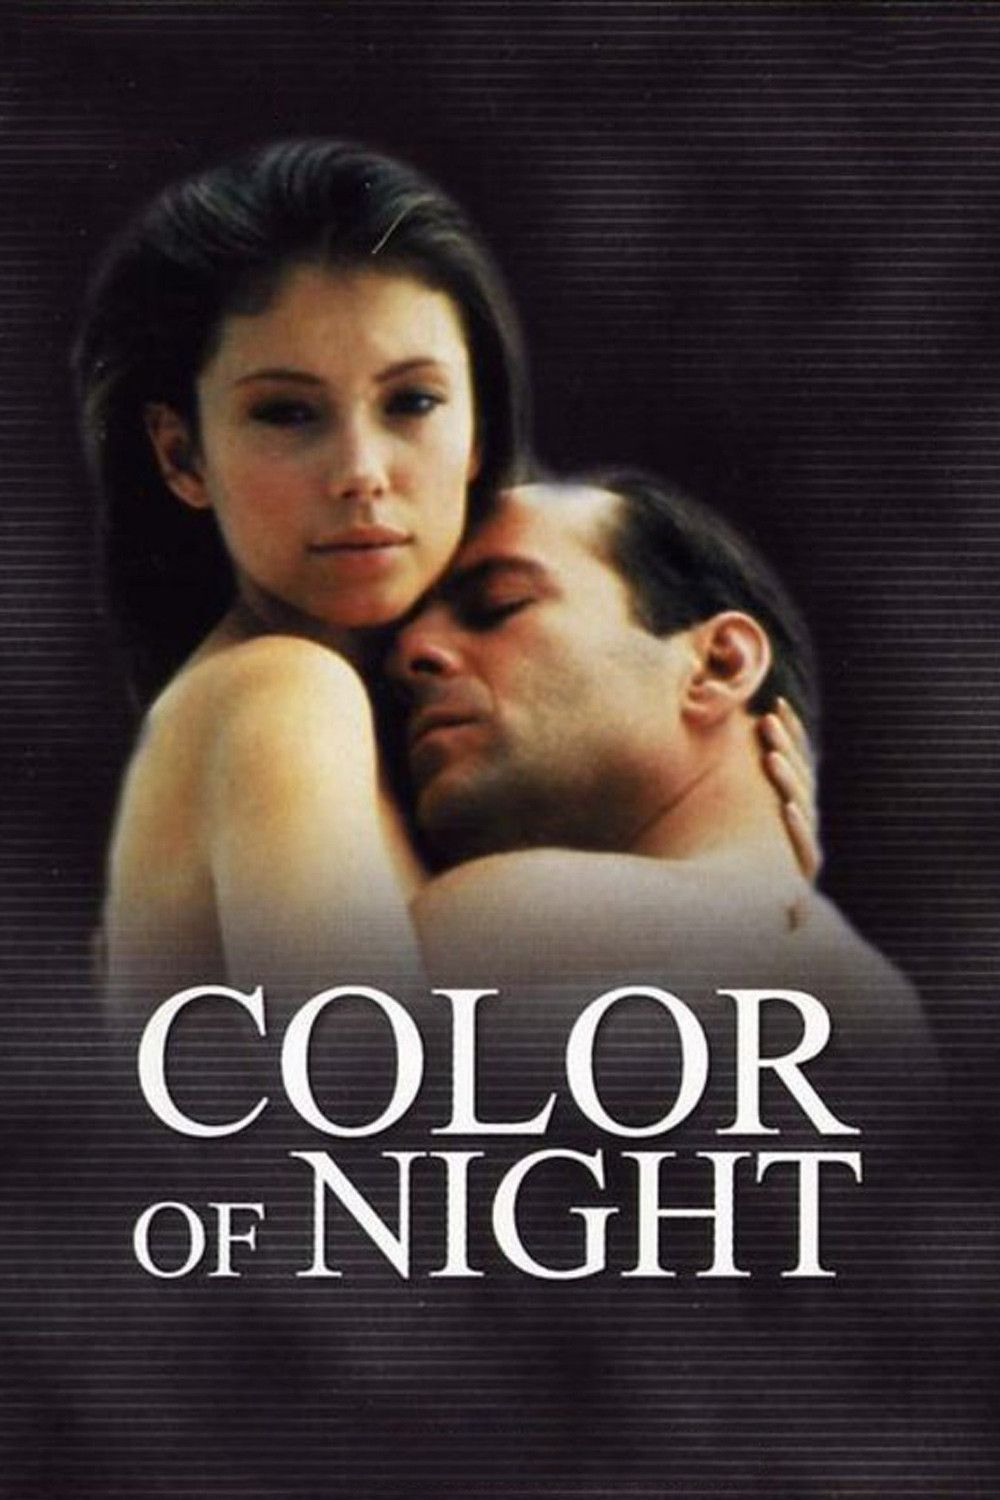 Color Of Night 1994 Color Of Night Night Film Full Movies Online Free